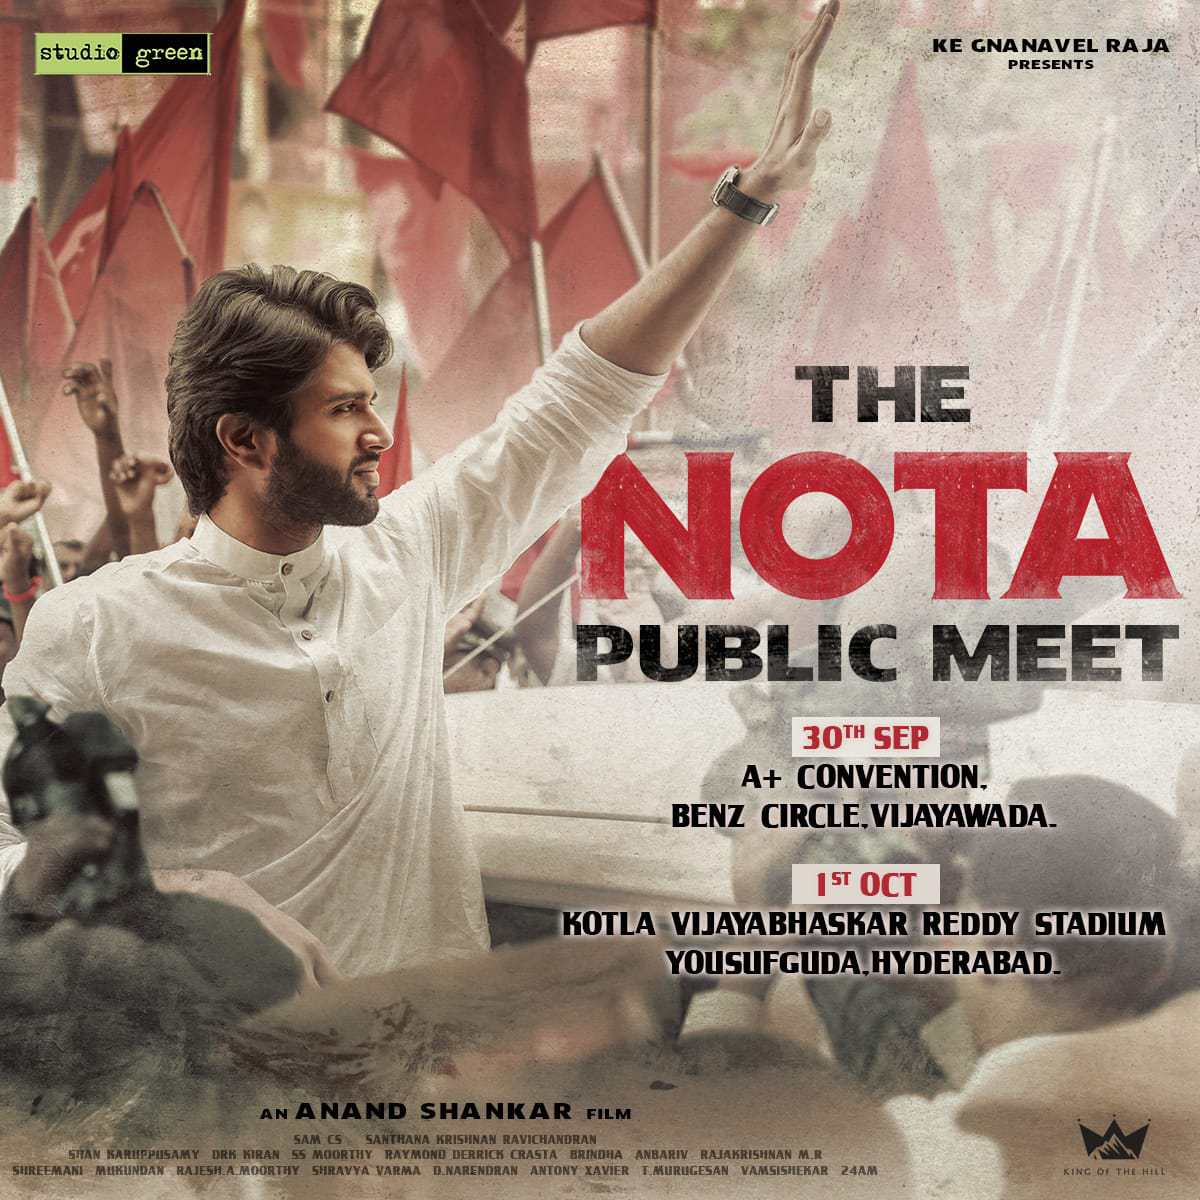 NOTA Public Meet Events on Sept 30th and Oct 1st